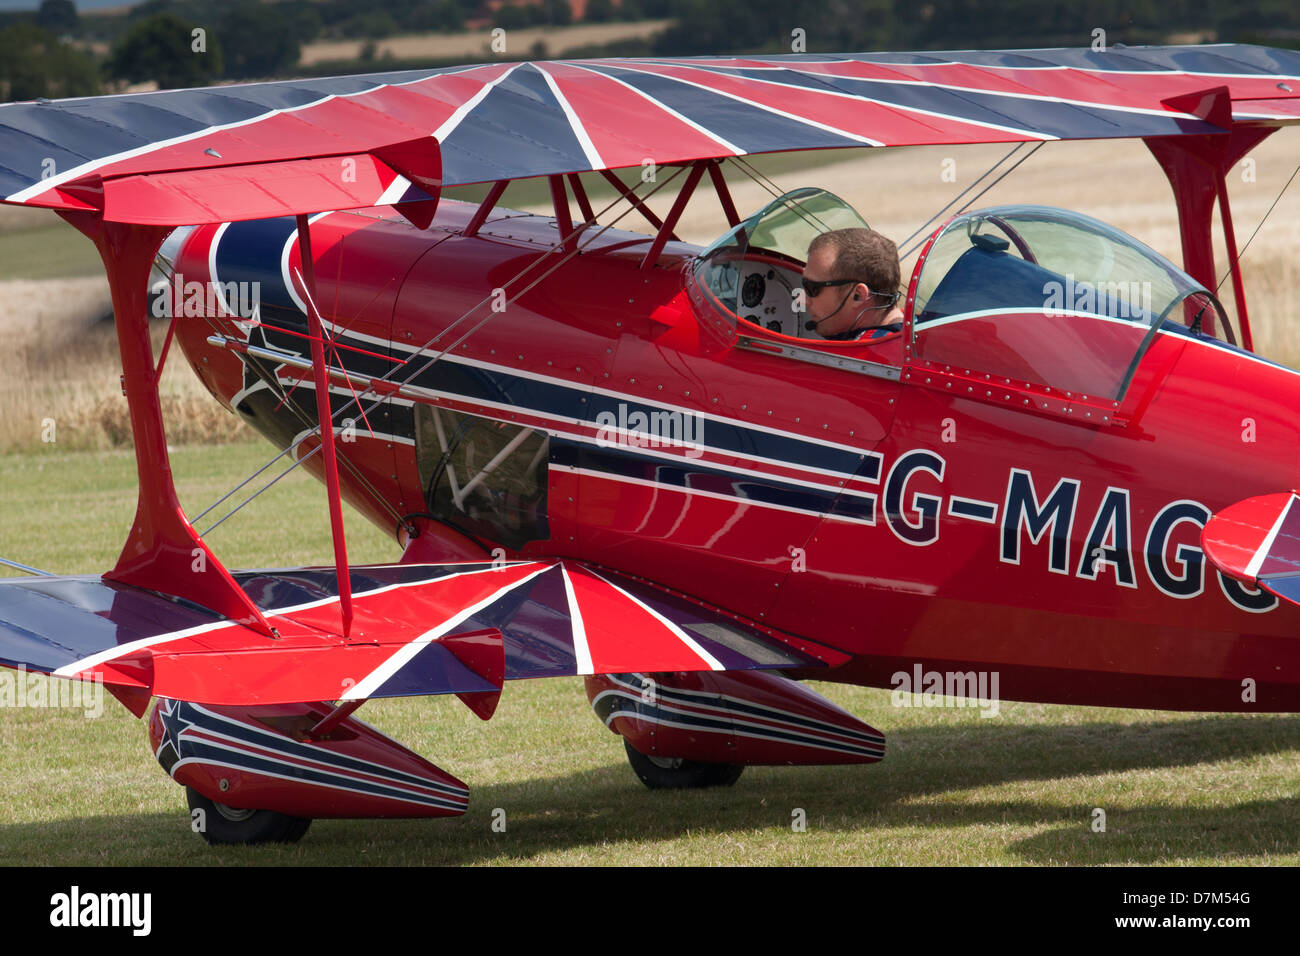 Pitts Special aerobatic plane preparing for takeoff - Stock Image